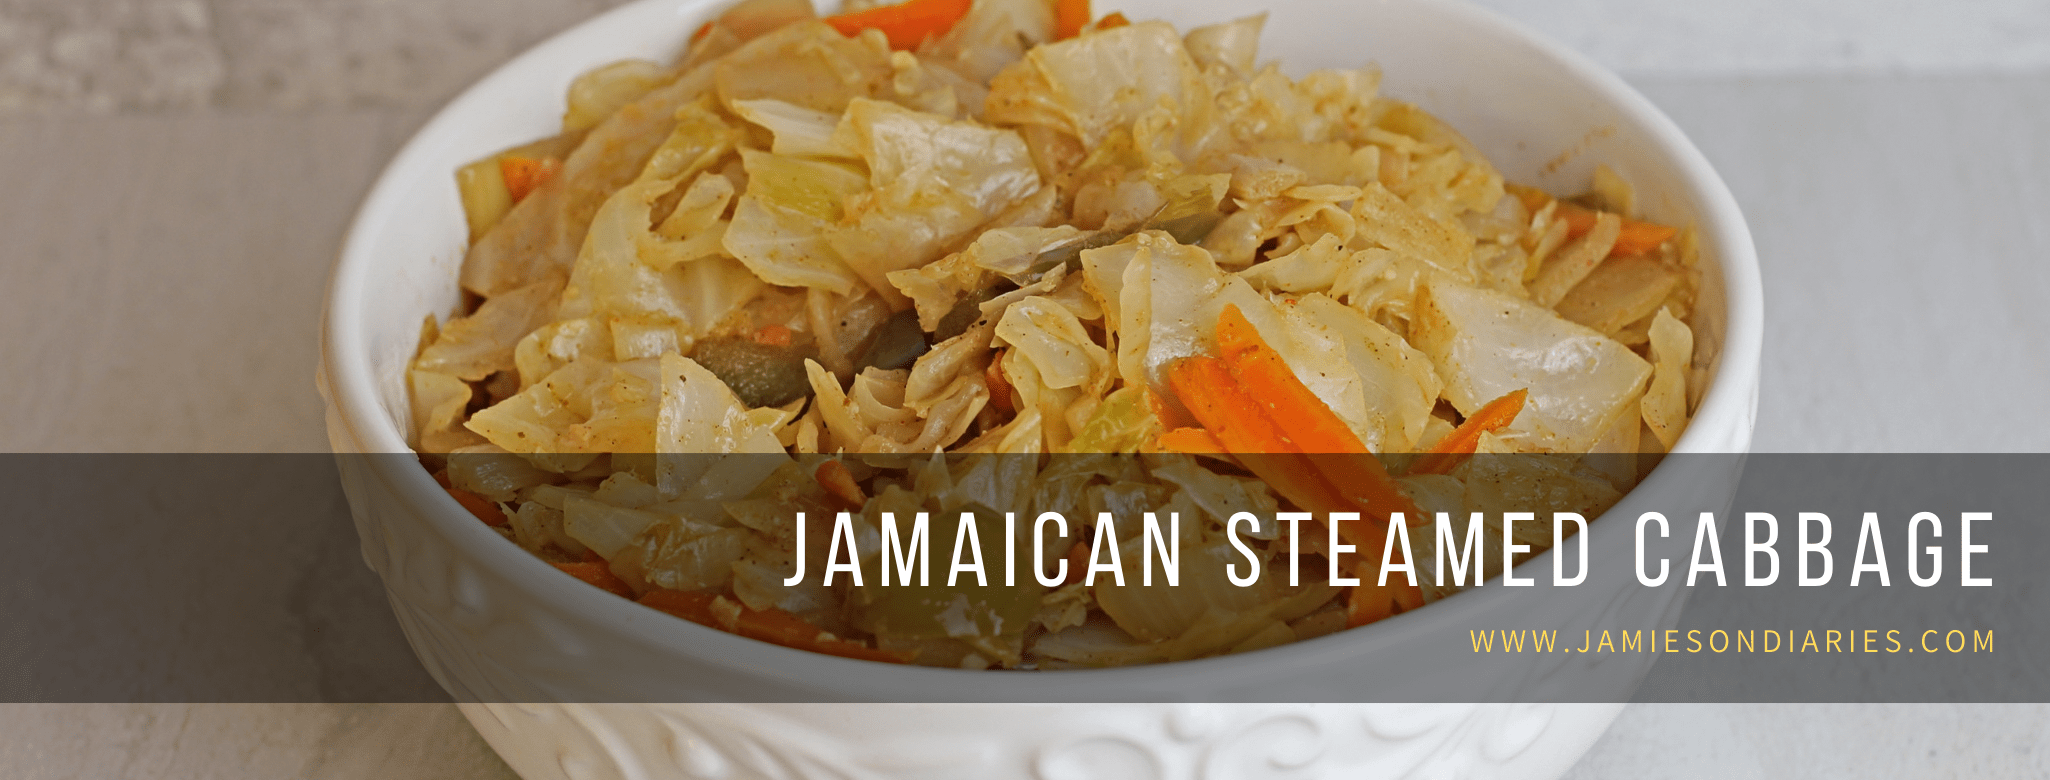 Jamaican steamed cabbage